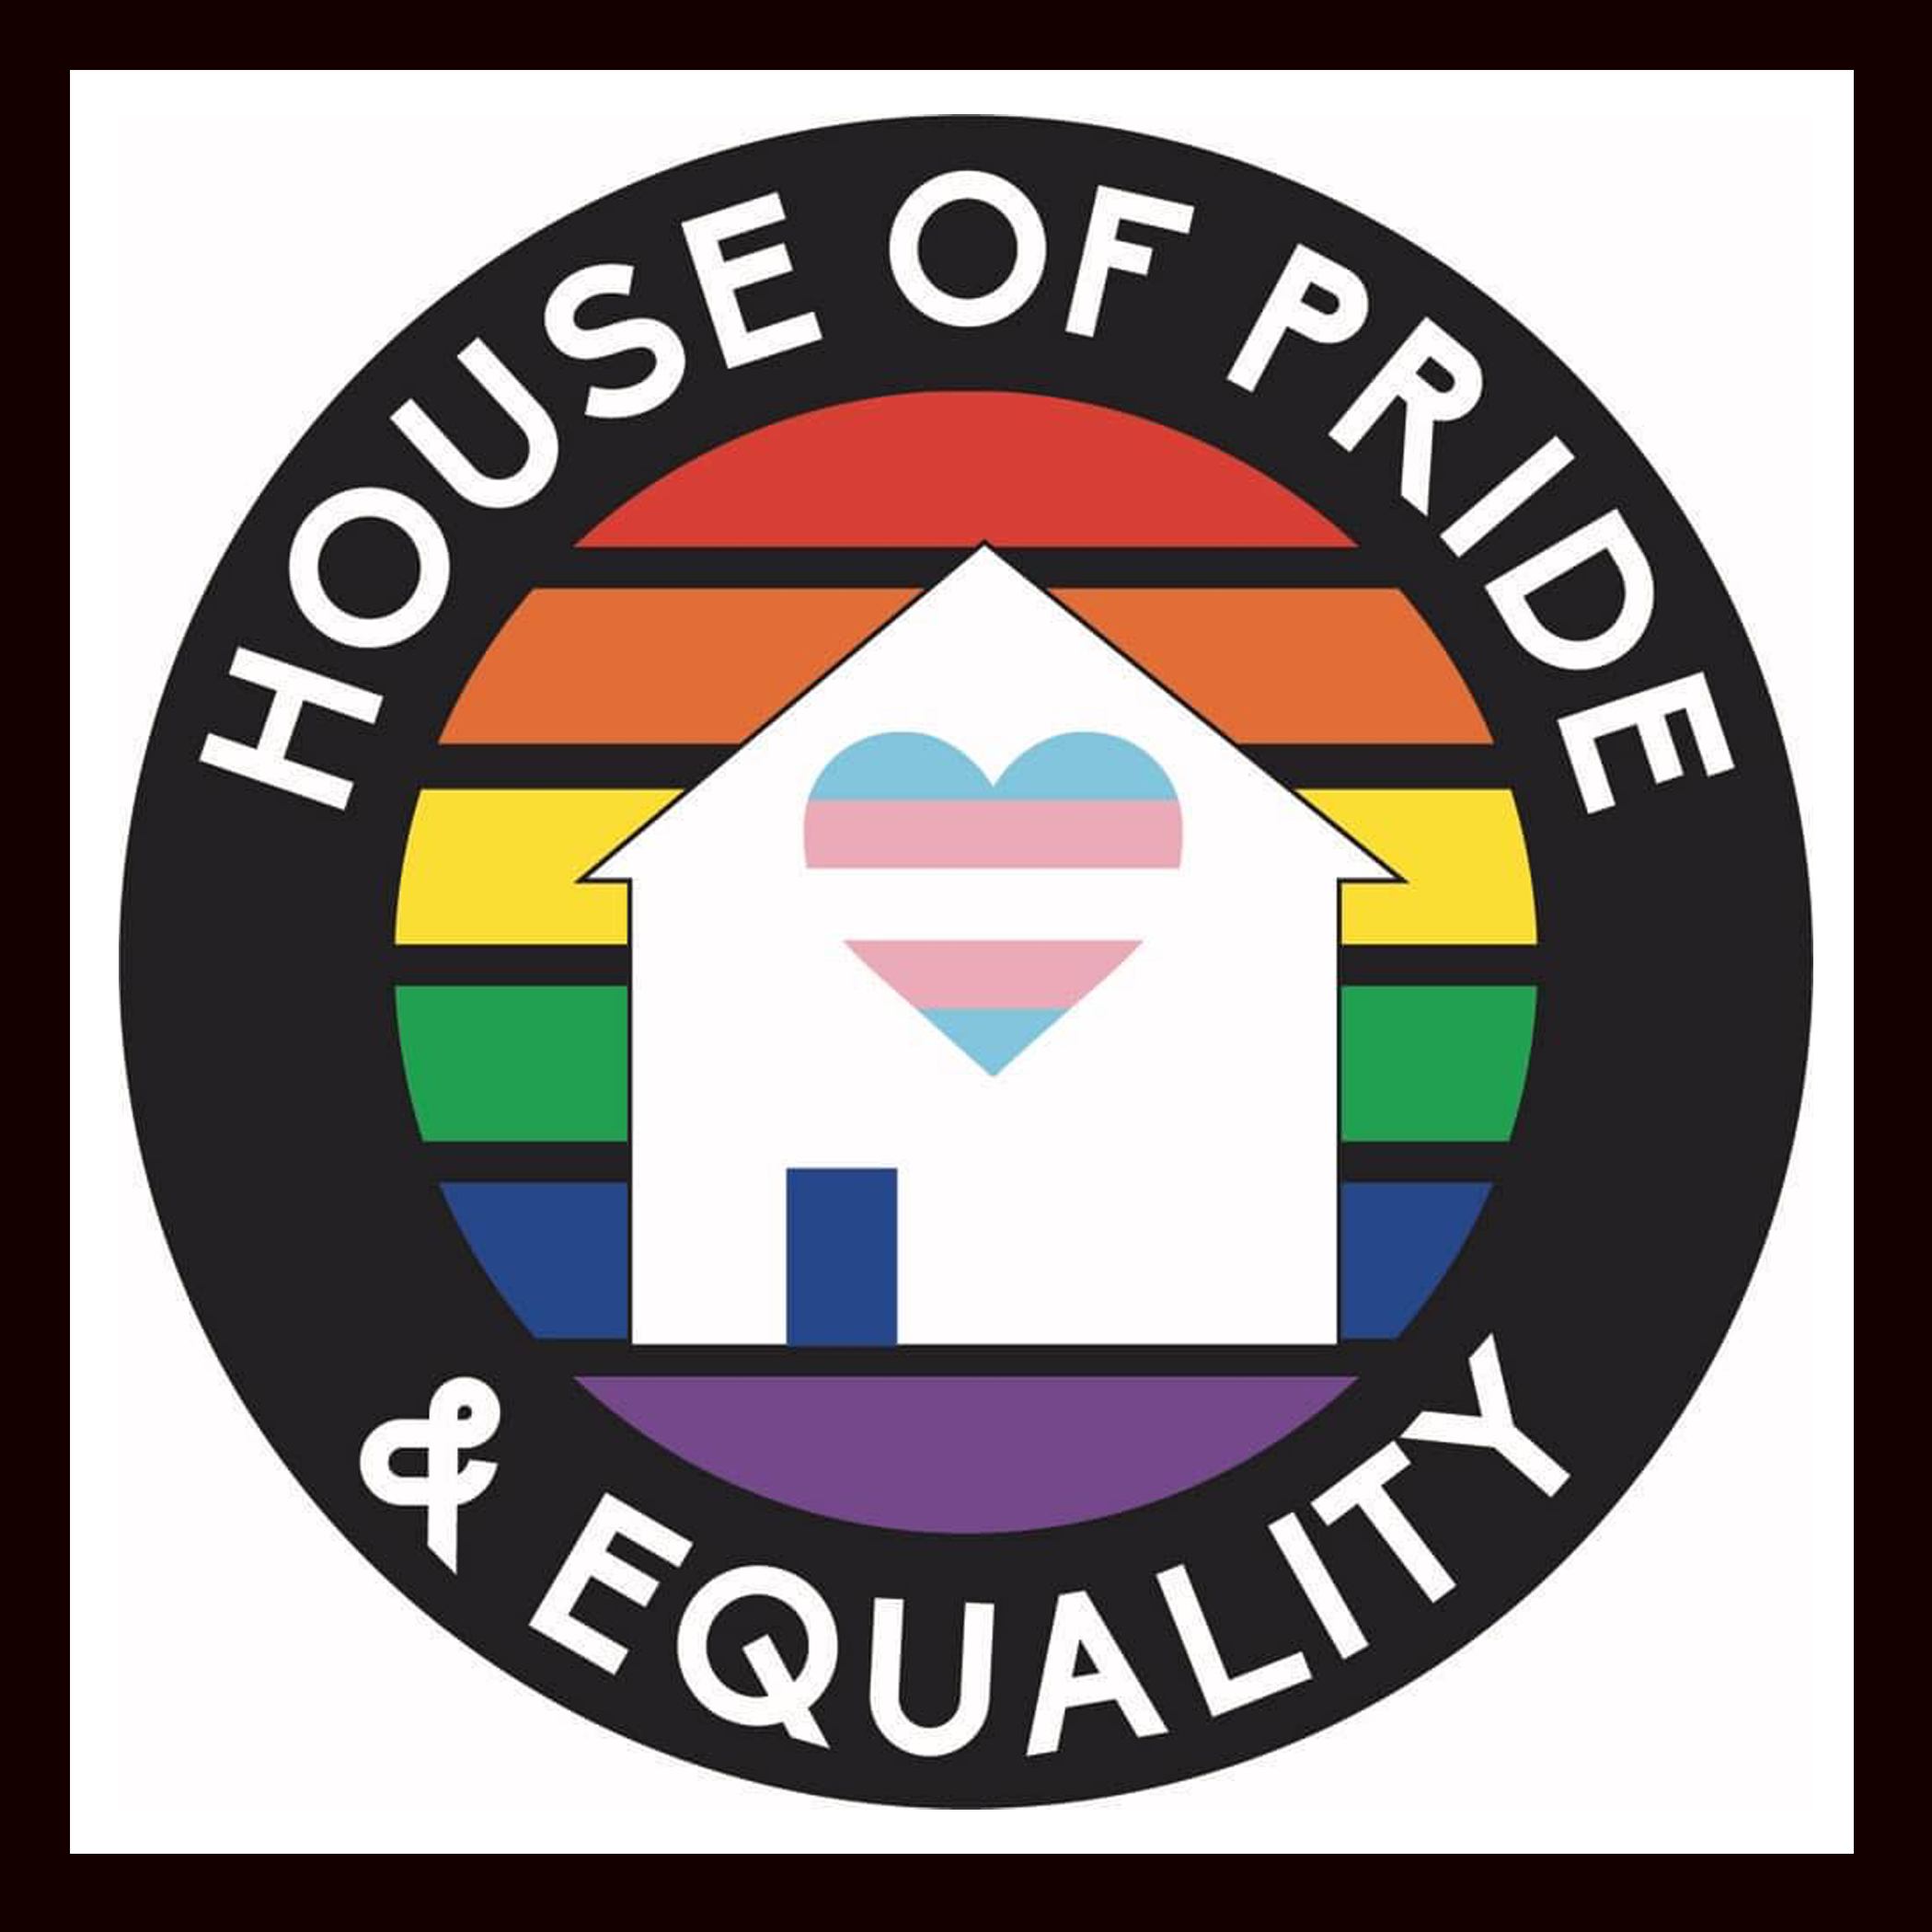 House of Pride & Equality, Santa Maria